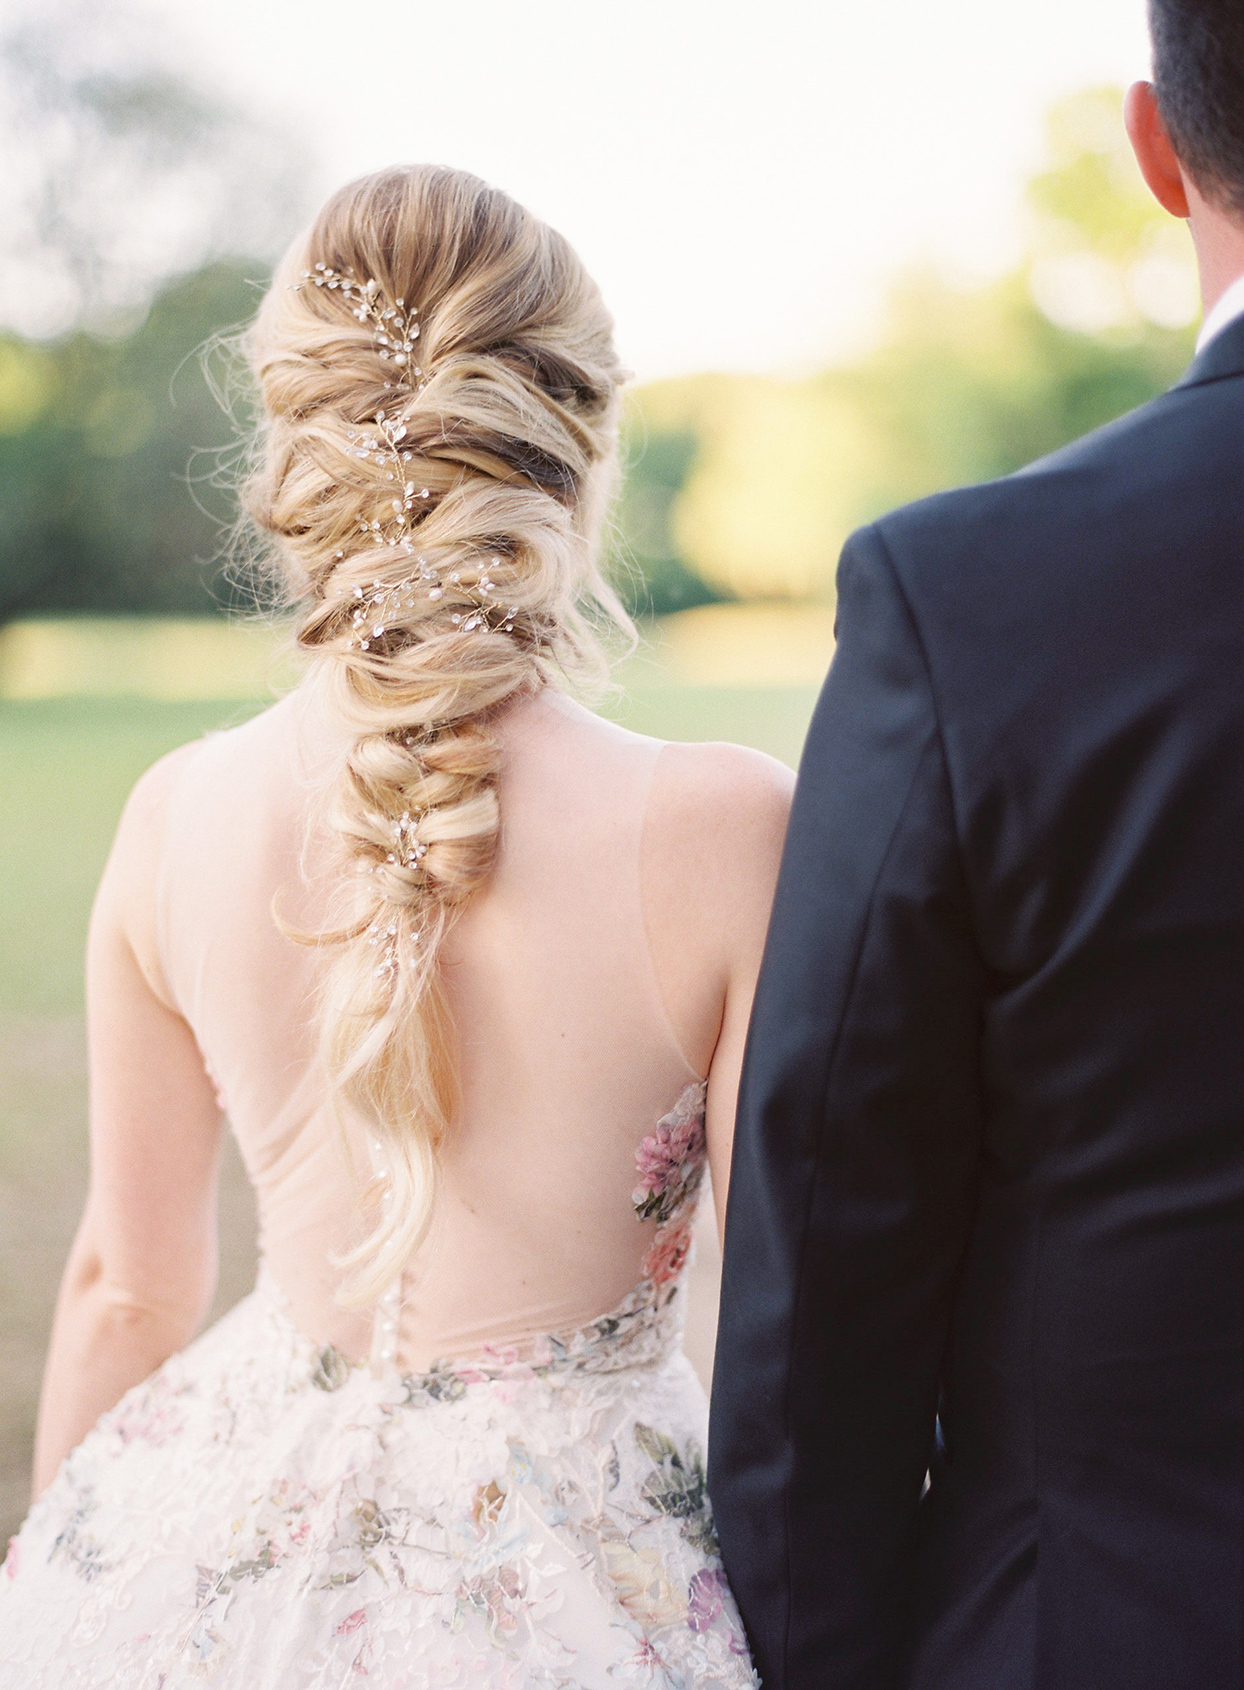 chelsea john bride's wedding braid with floral decoration